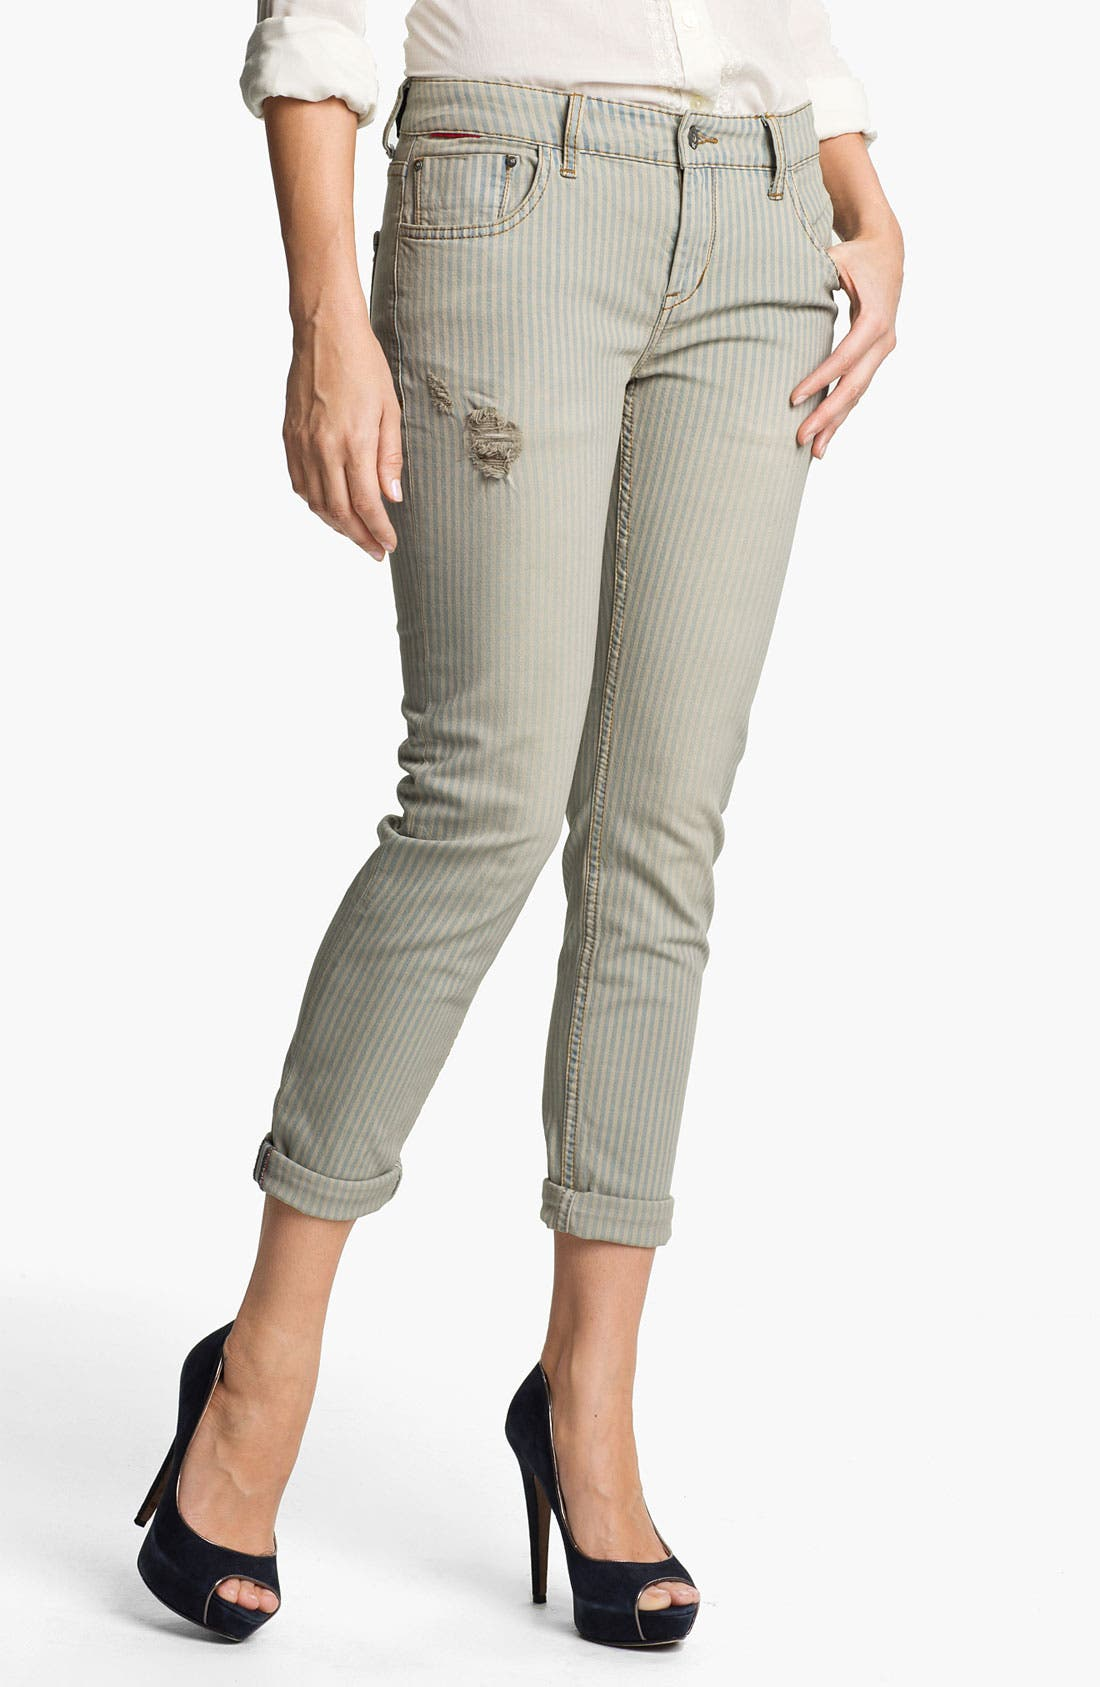 Main Image - !iT Collective 'My New Boy' Stripe Ankle Length Straight Leg Jeans